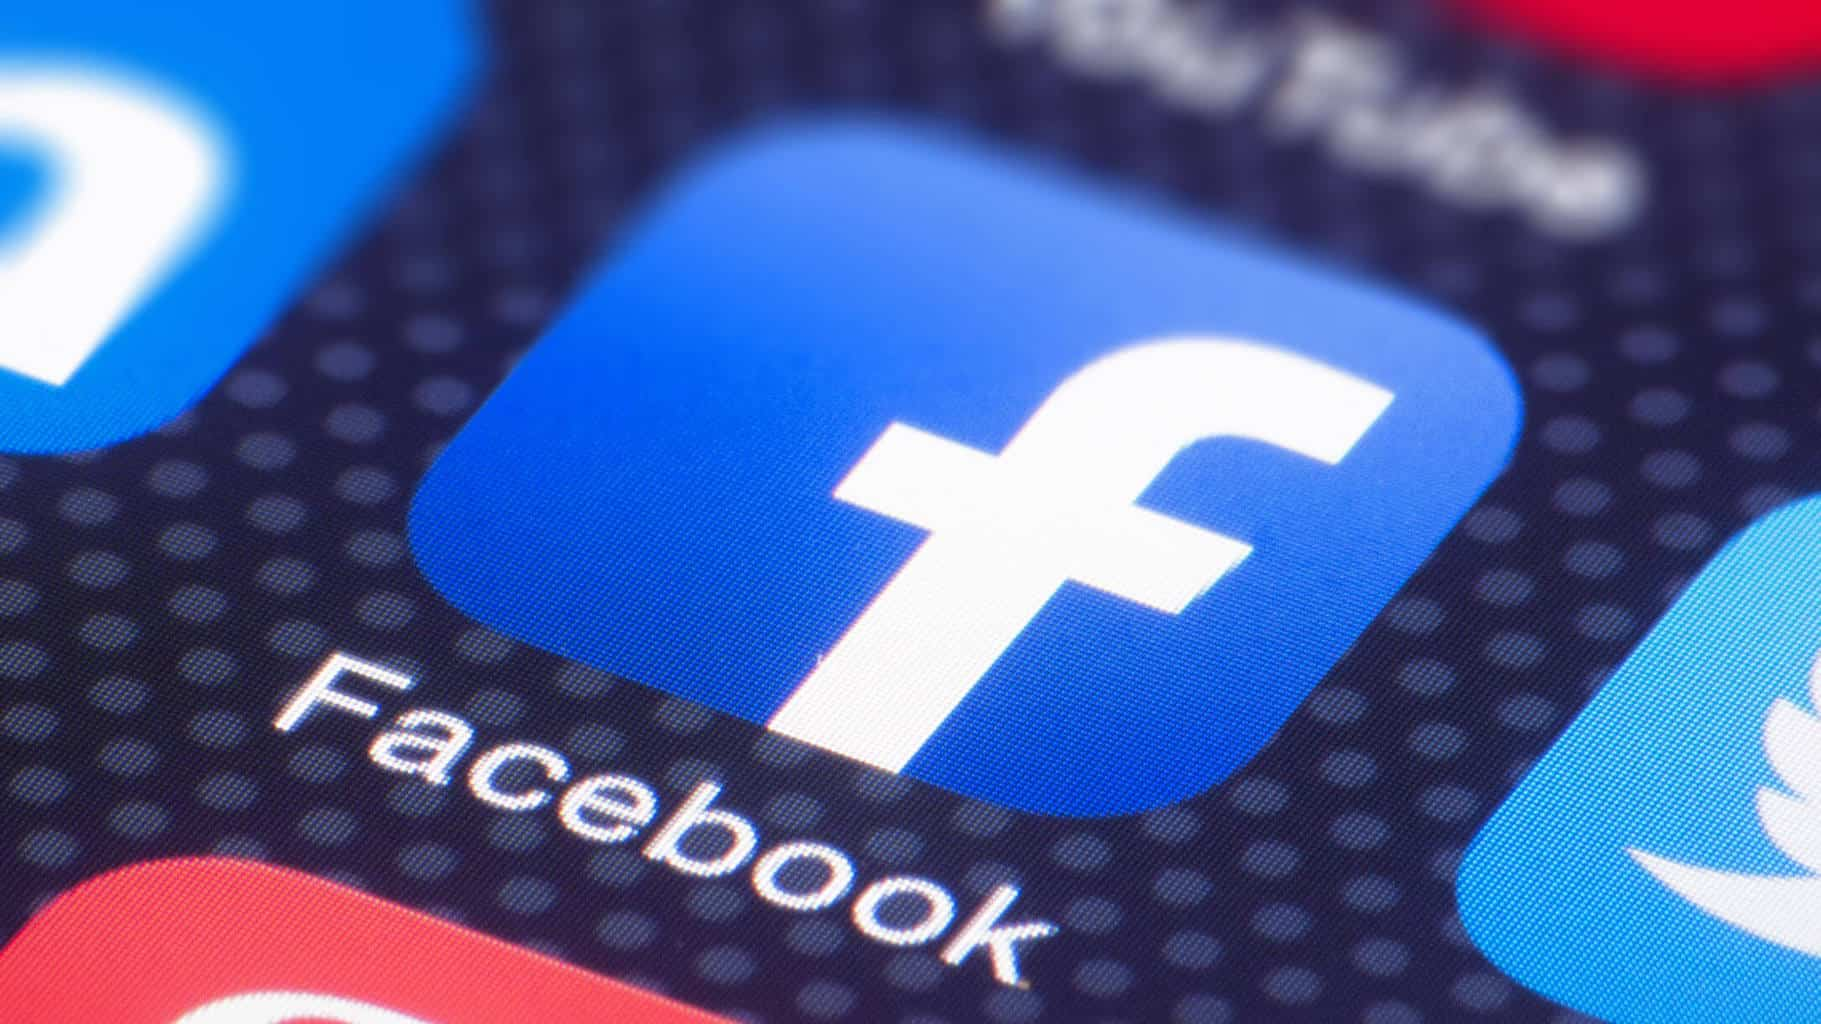 Cambridge Analytica Investigations Make Facebook (FB) Suspend Thousands of Apps